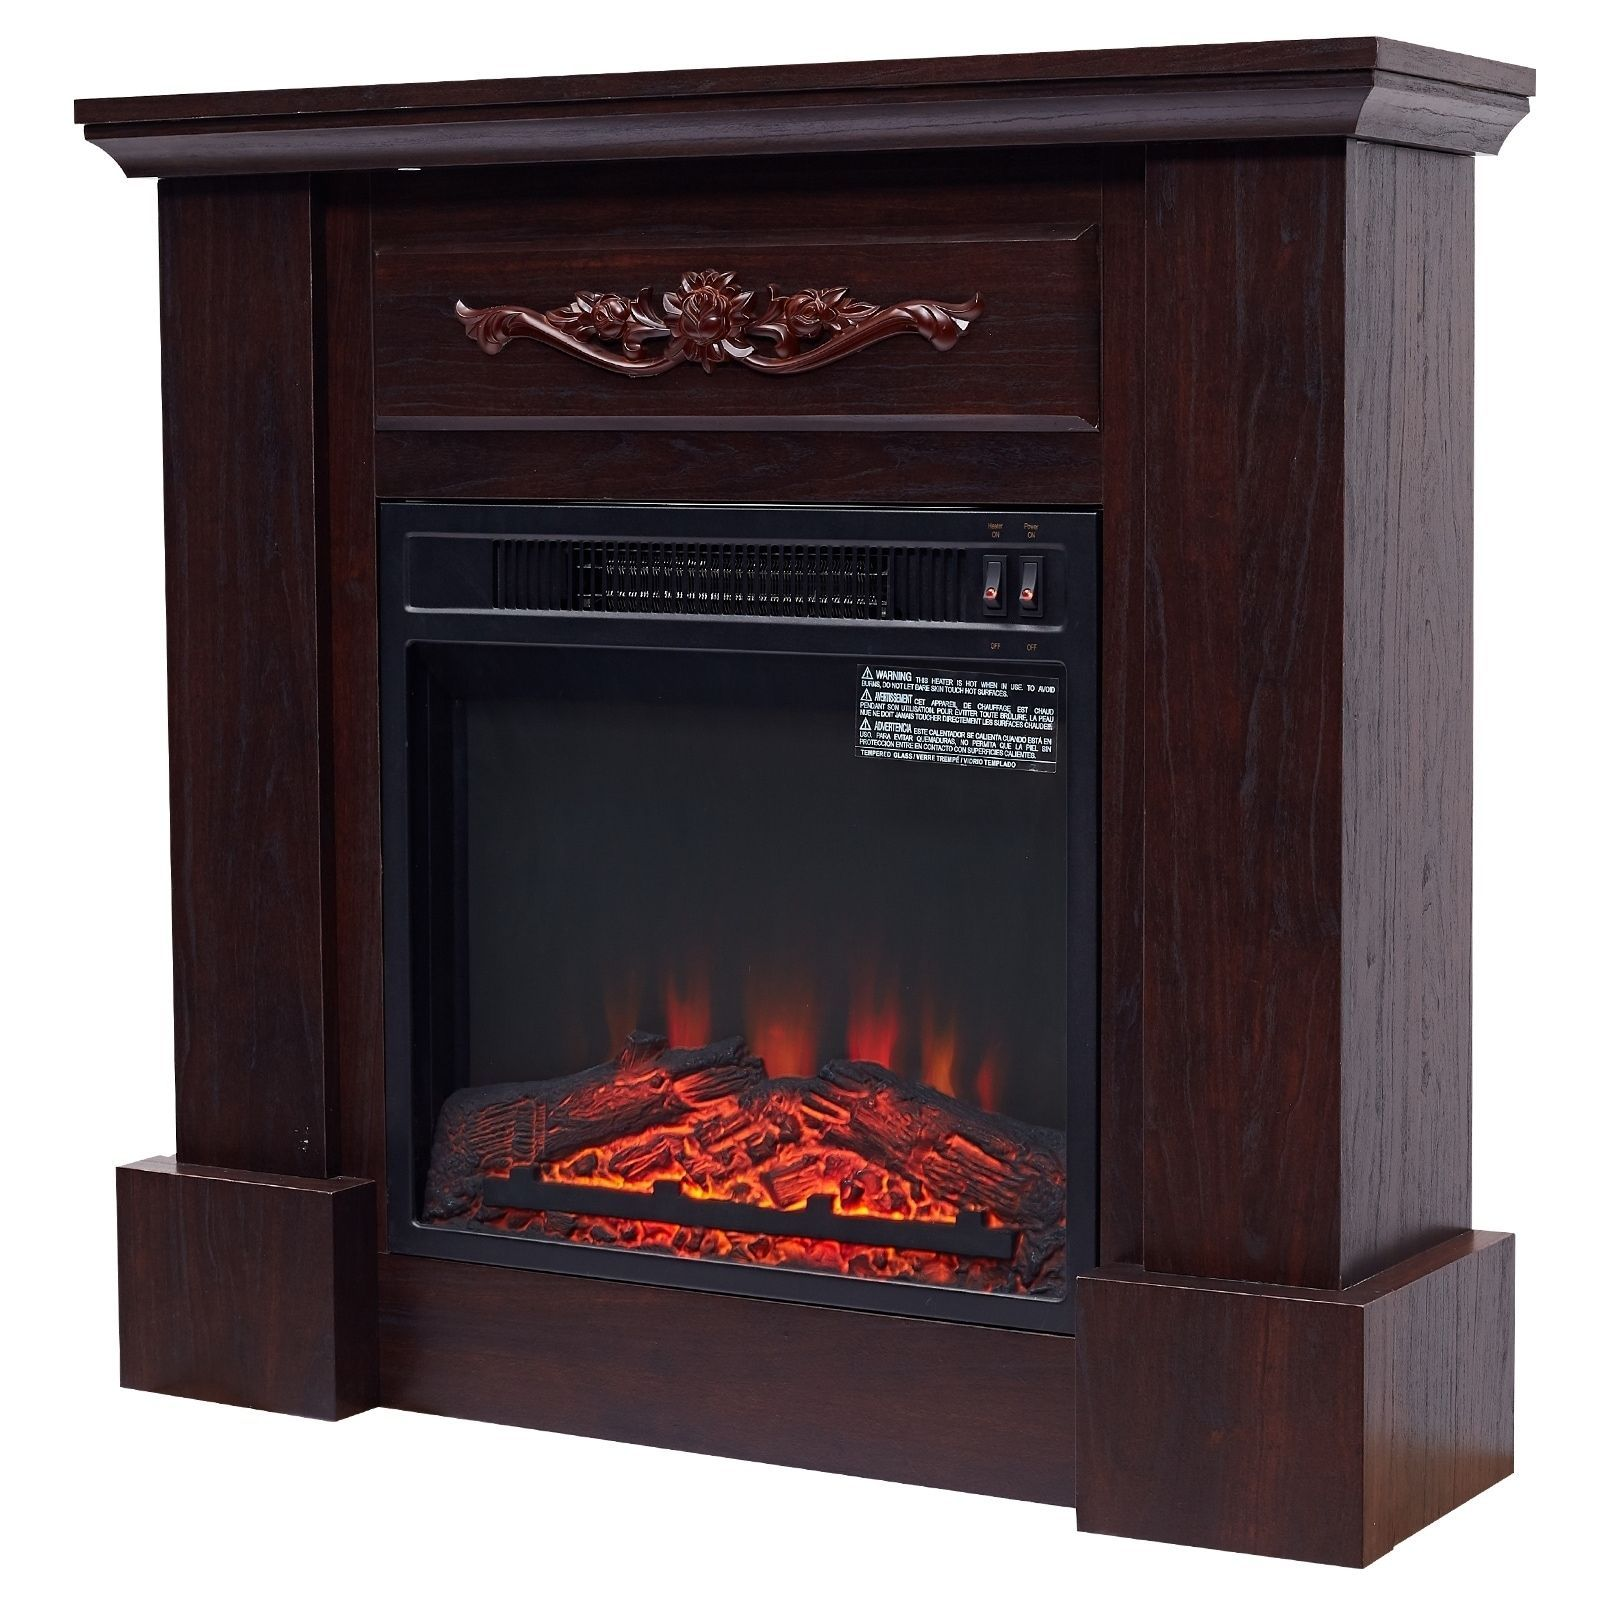 Excellent Absolutely Free Freestanding Fireplace With Mantel Suggestions Fireplaces Certainly Are Fireplace Heater Electric Fireplace Heater Electric Fireplace